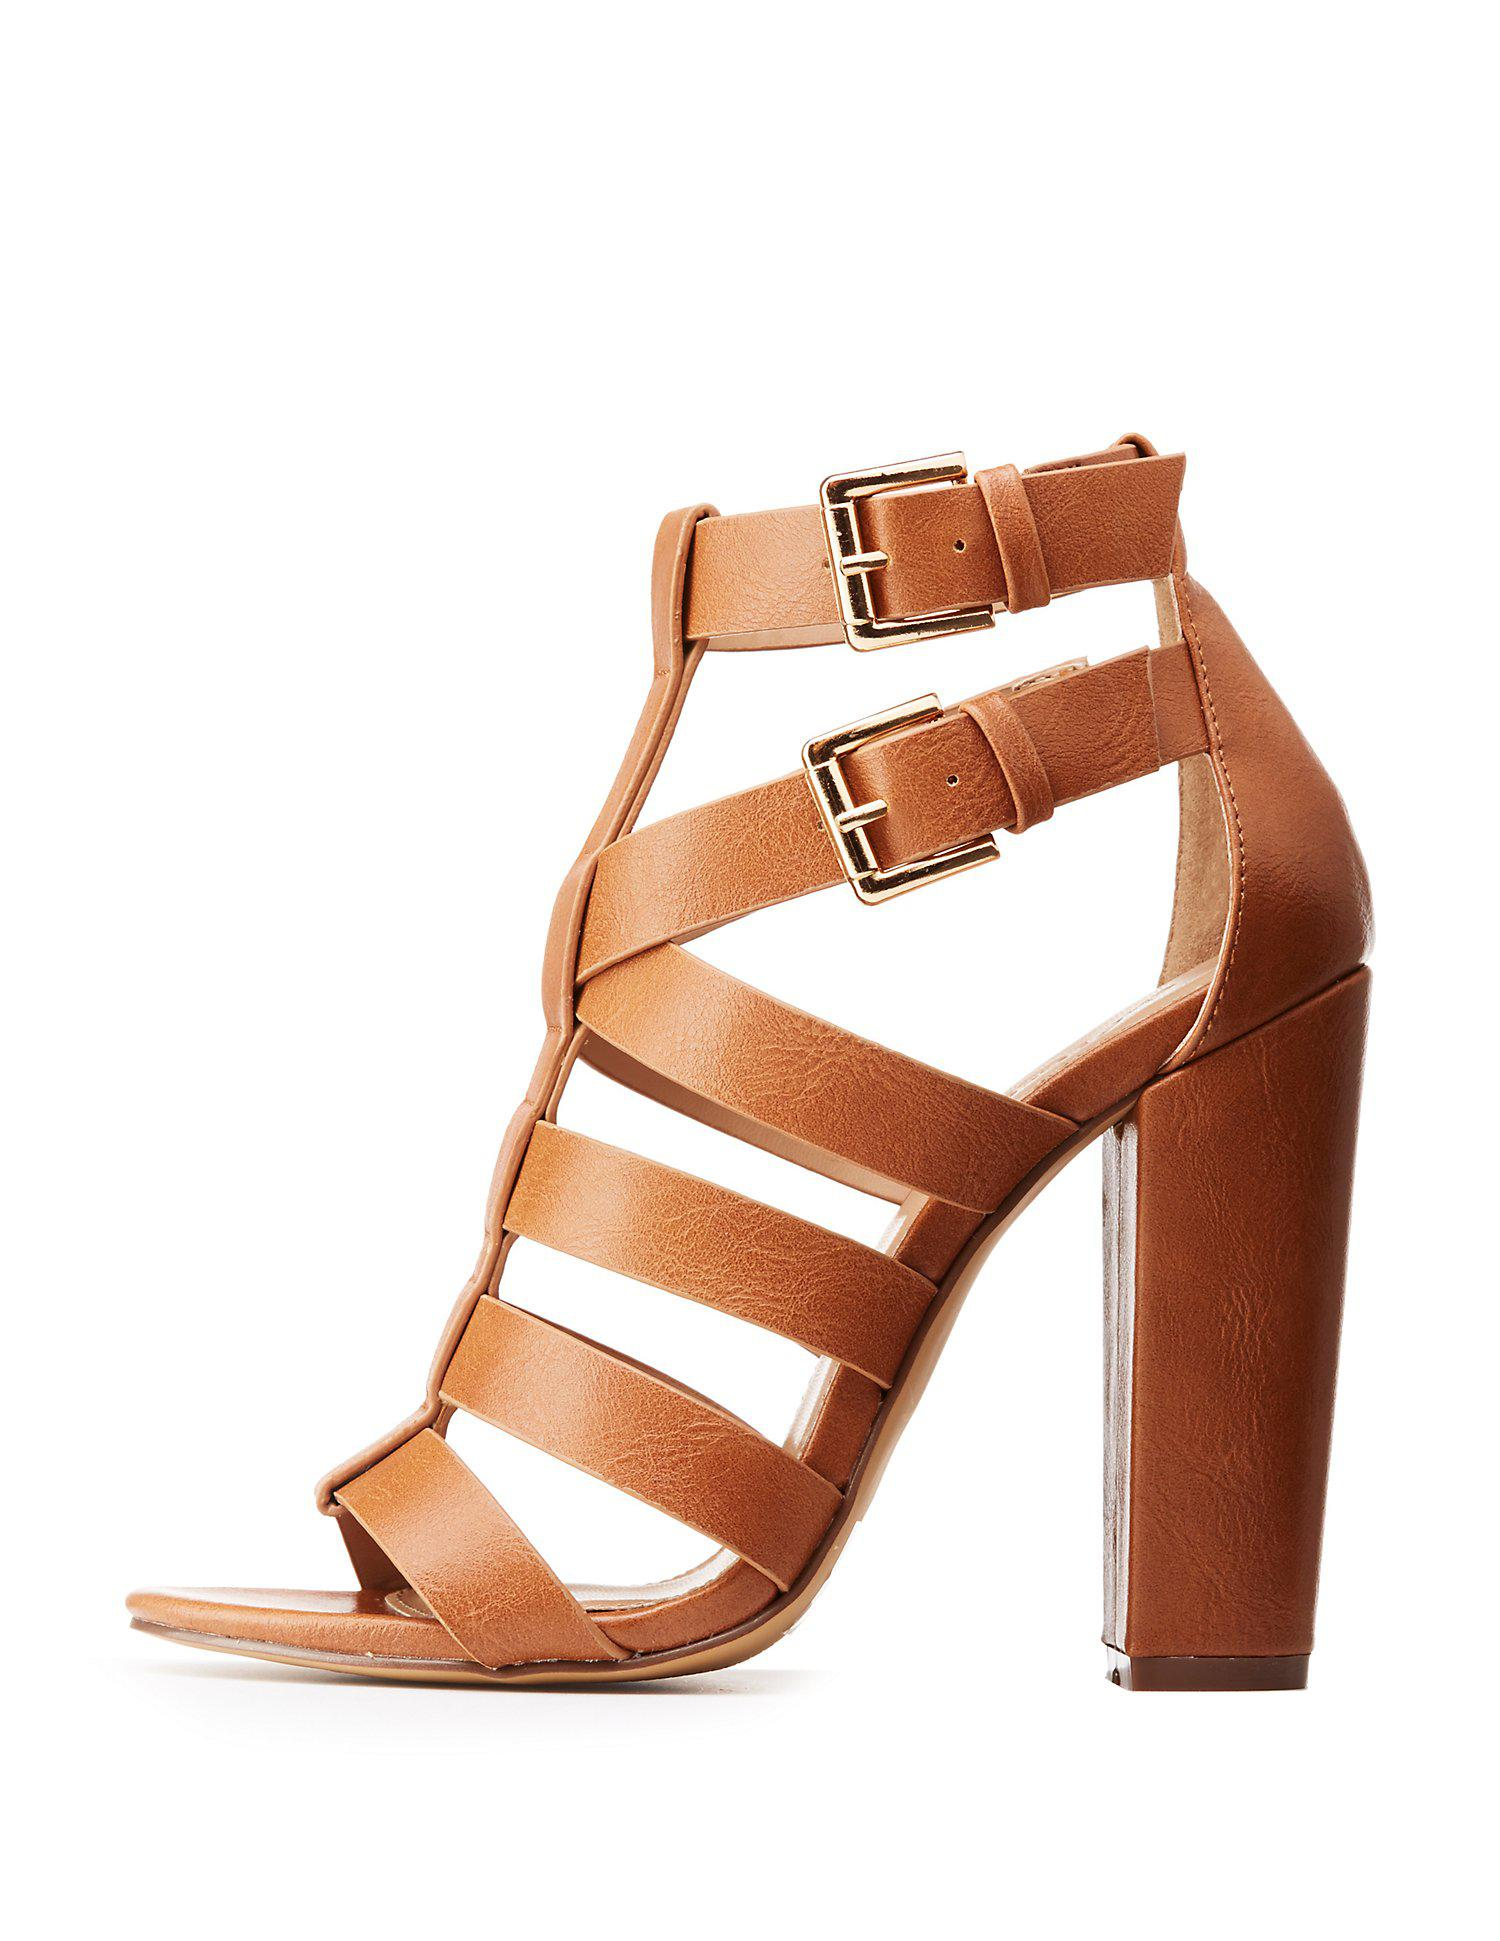 19ede31448cf1f Lyst - Charlotte Russe Strappy Block Heel Sandals in Brown